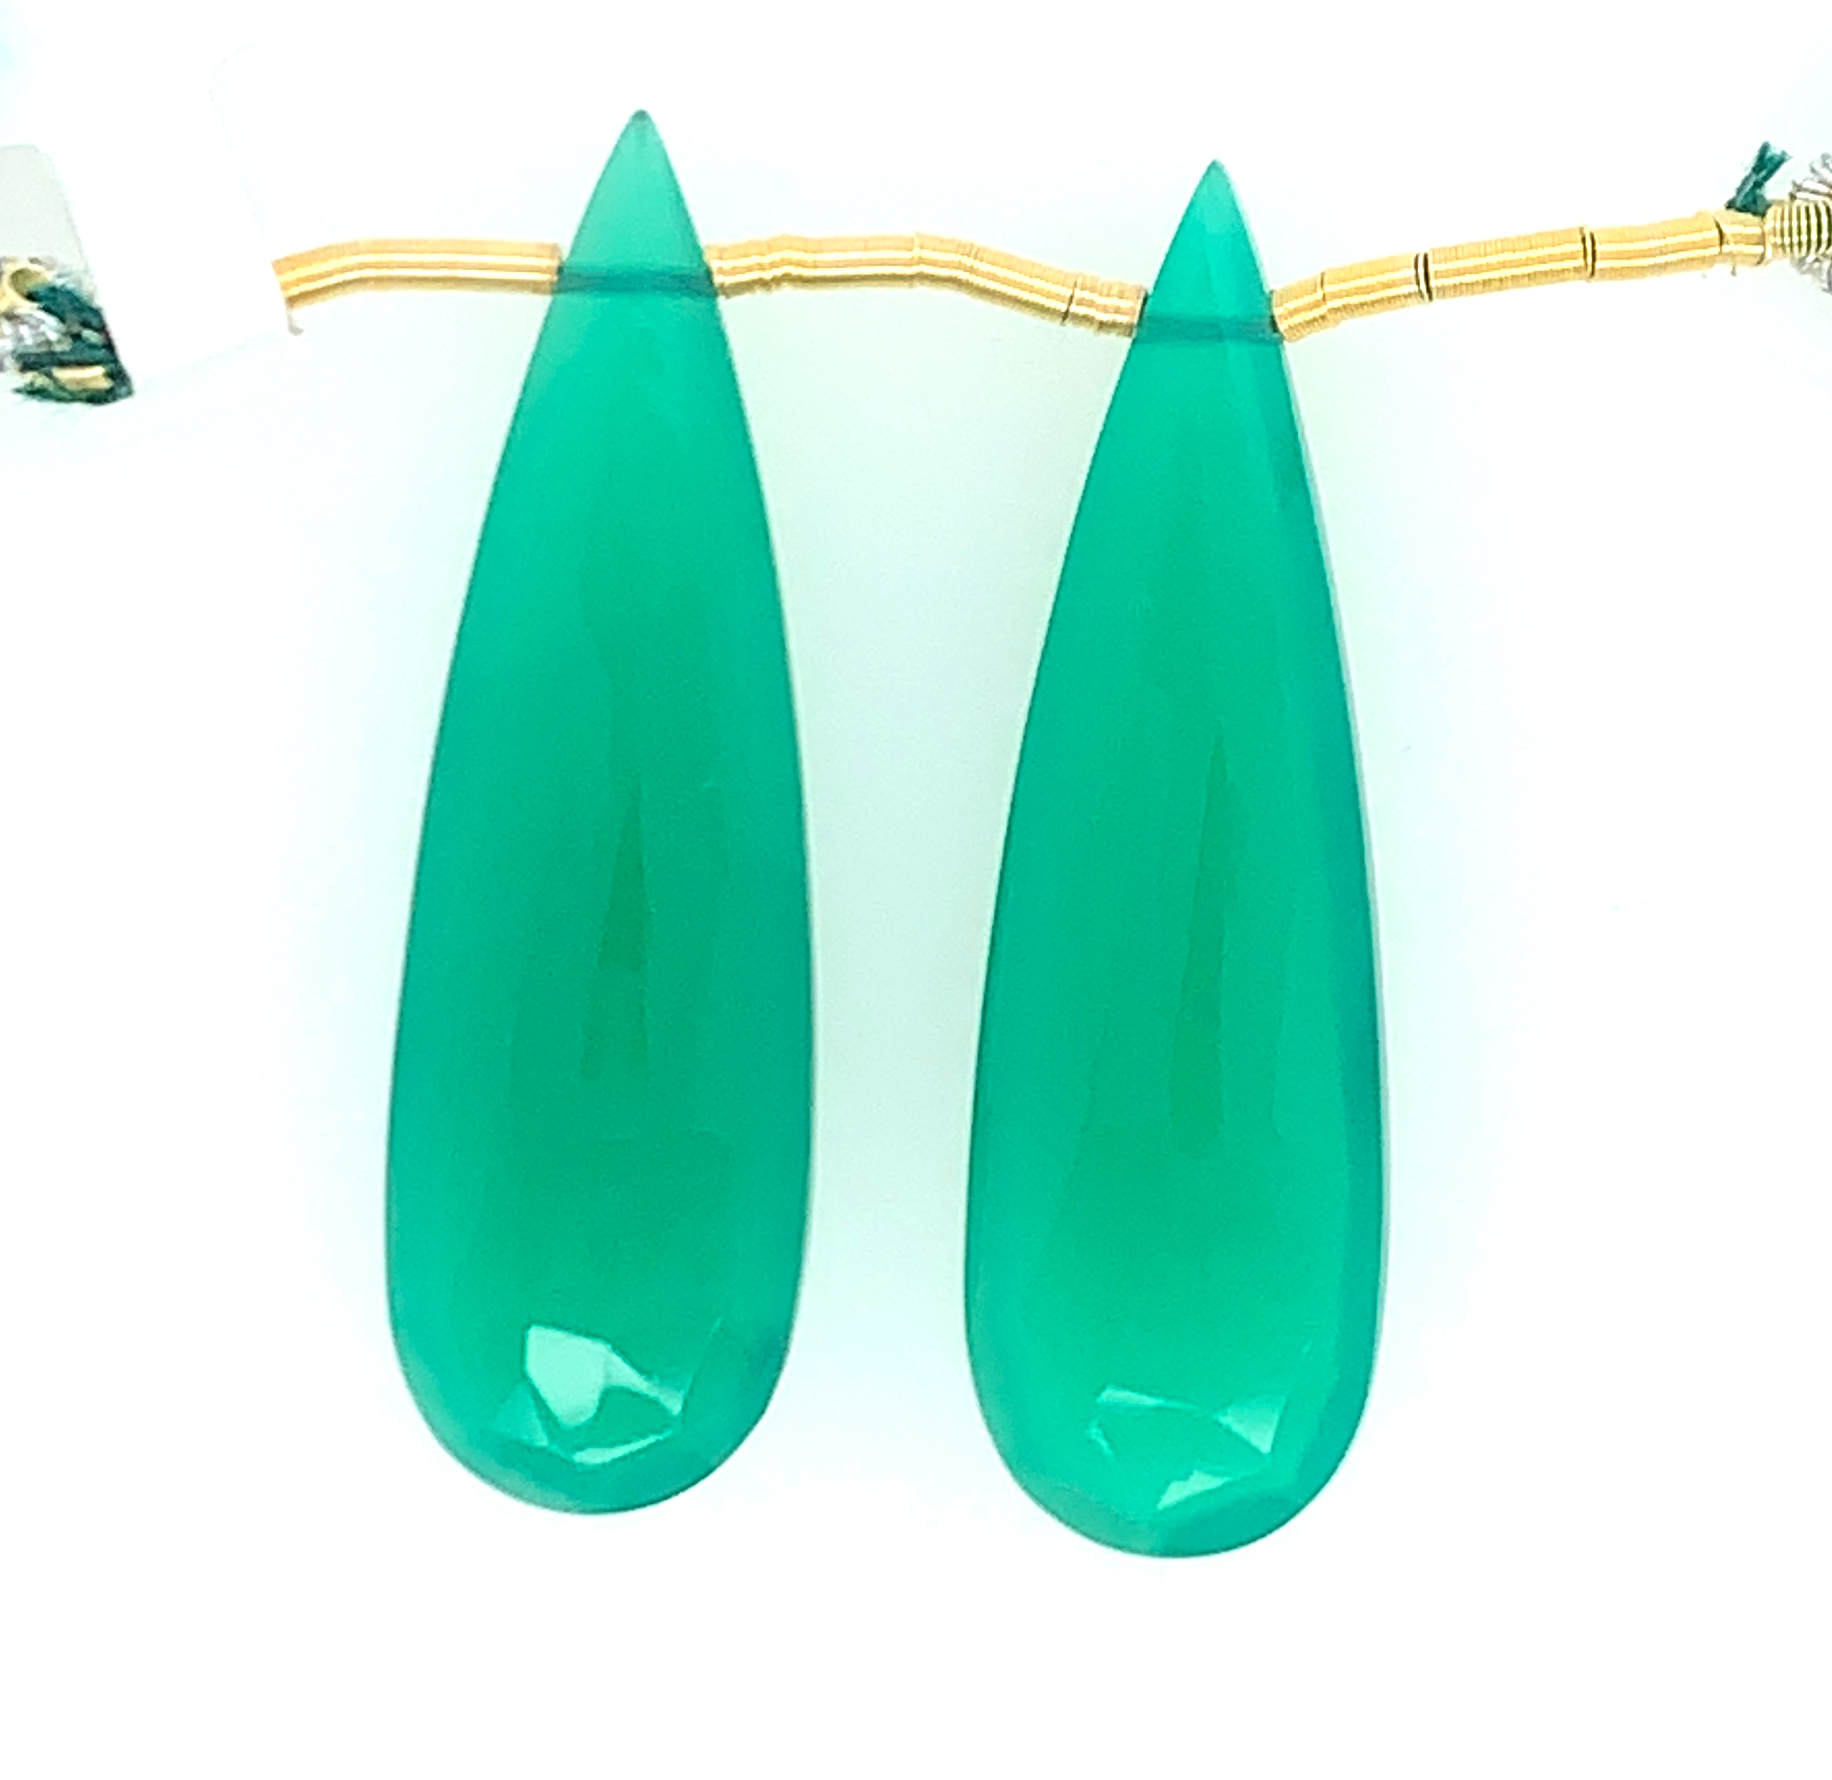 Earring Making Faceted Drops Deep Green Color 31863 Green Onyx Drops Almond Shape 25x15mm Drilled Beads Matching Pair